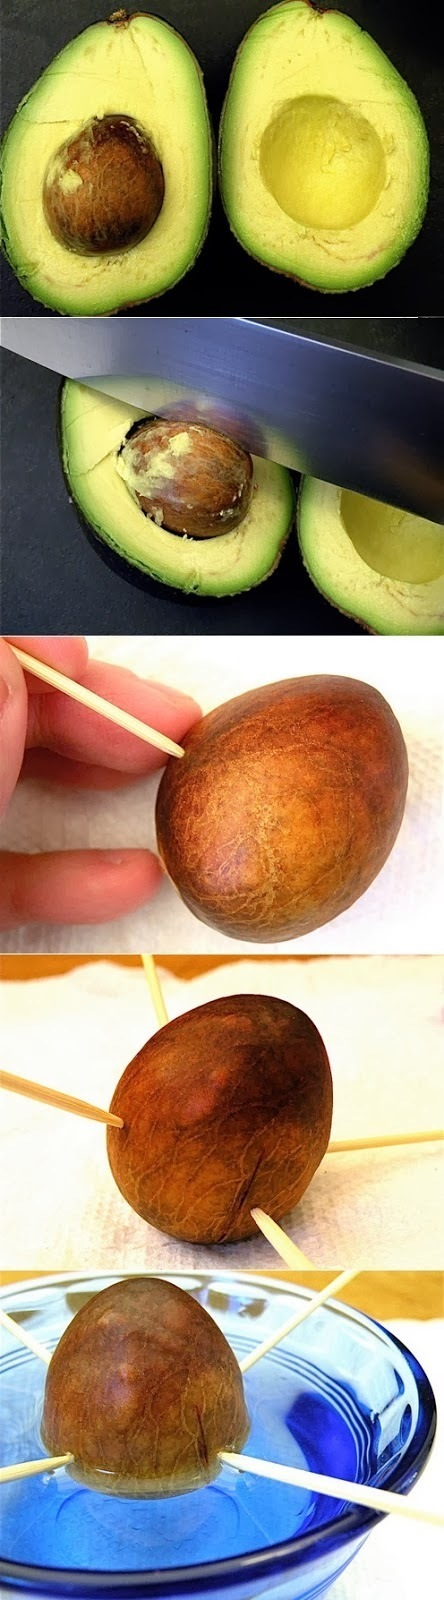 #Gardening : How to grow an avocado From pit | My Favorite Things | World In Green | Scoop.it